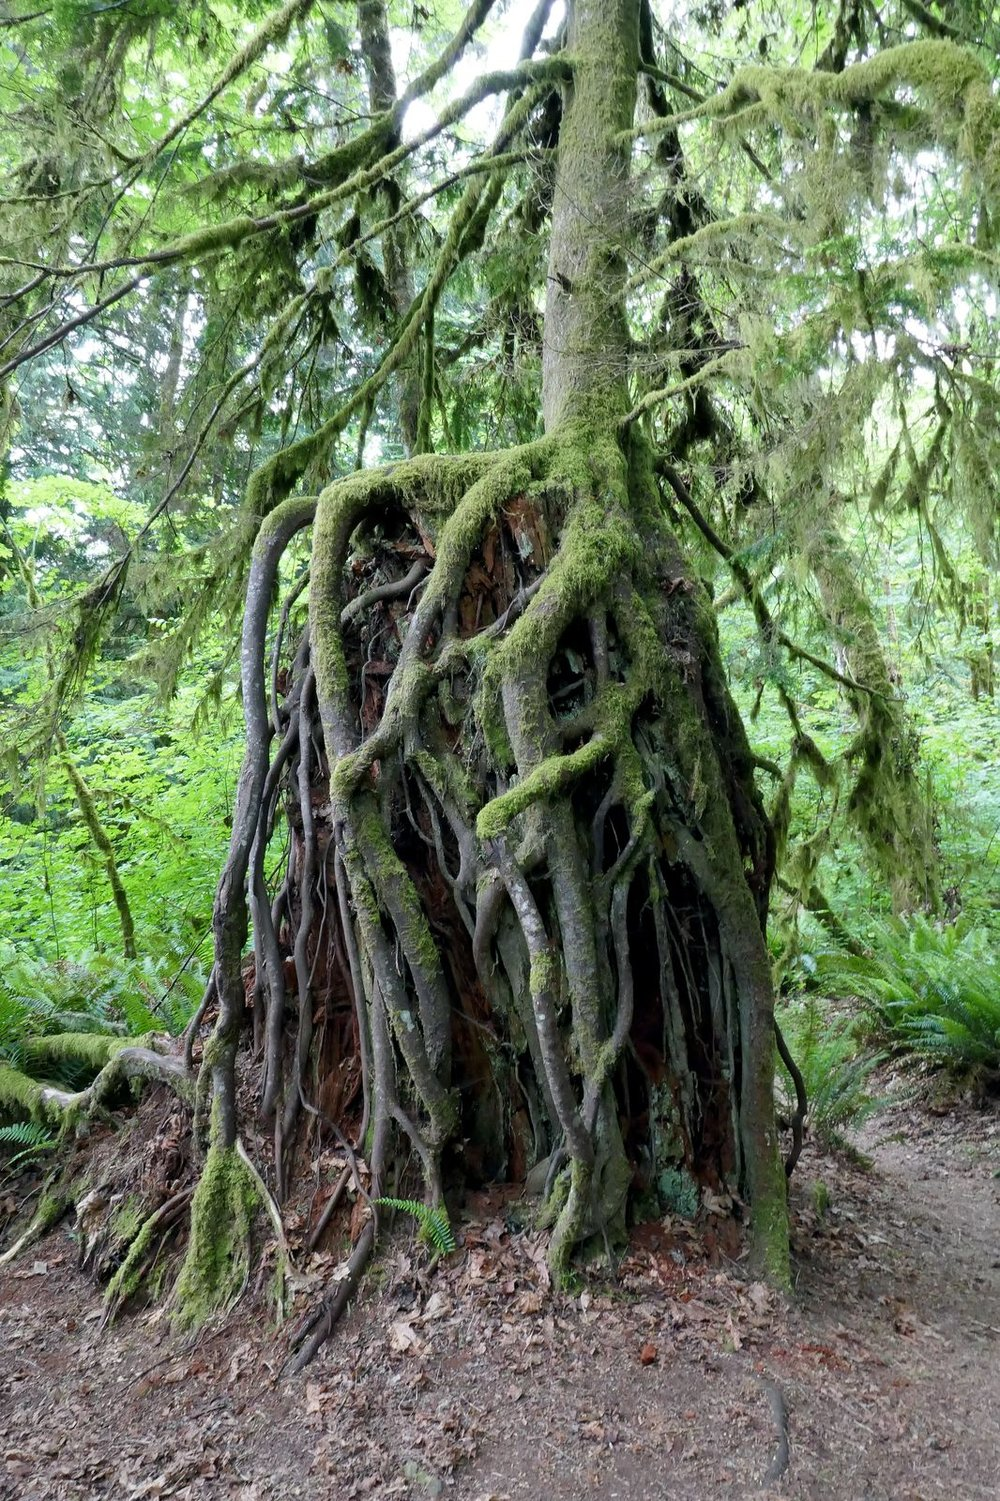 A living tree 10 feet off the ground with roots surrounding a stump